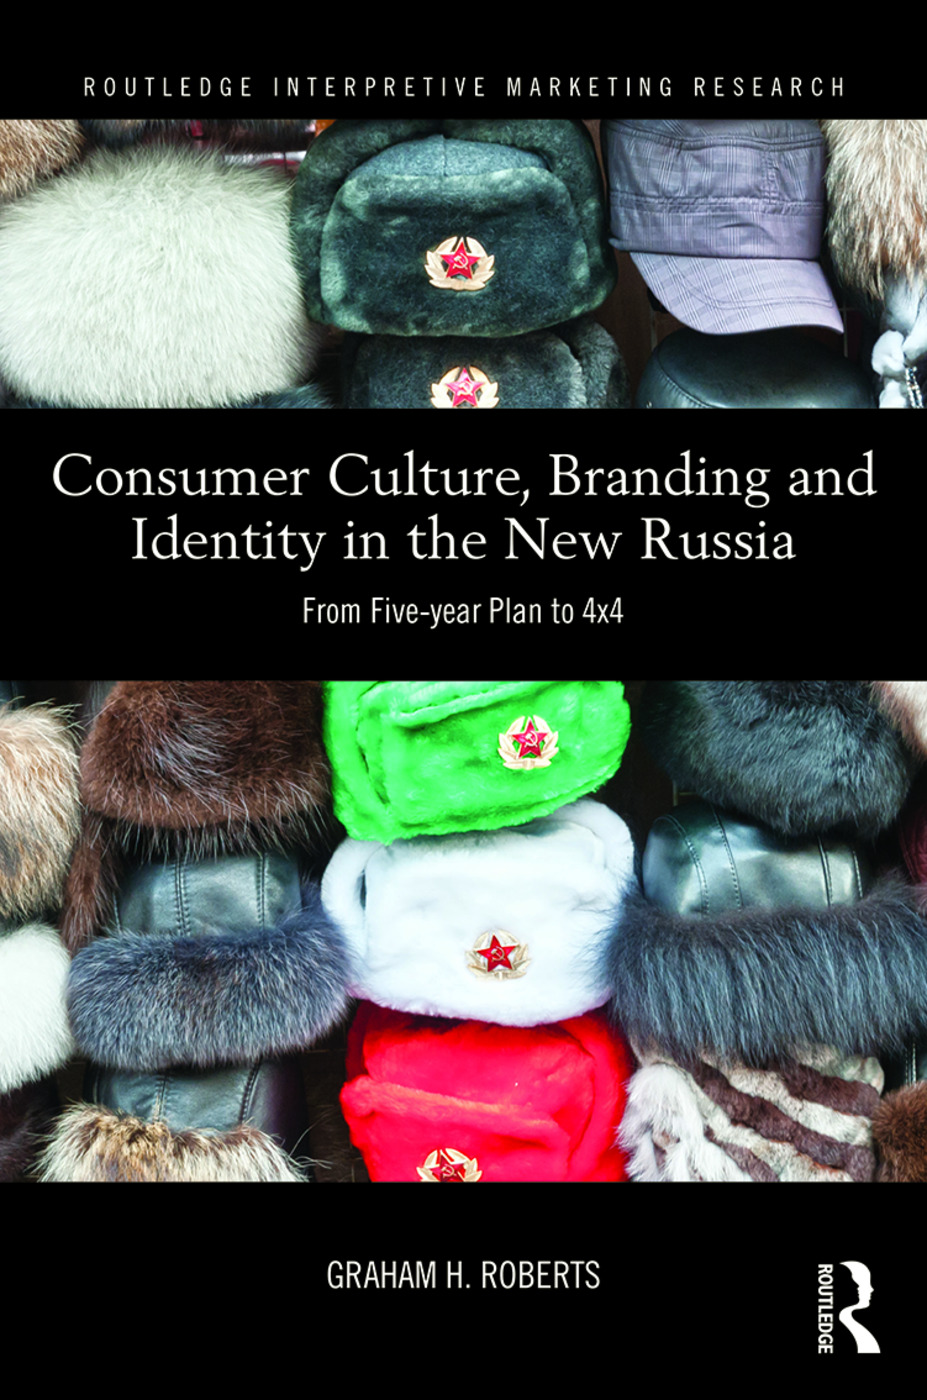 Consumer Culture, Branding and Identity in the New Russia: From Five-year Plan to 4x4 book cover